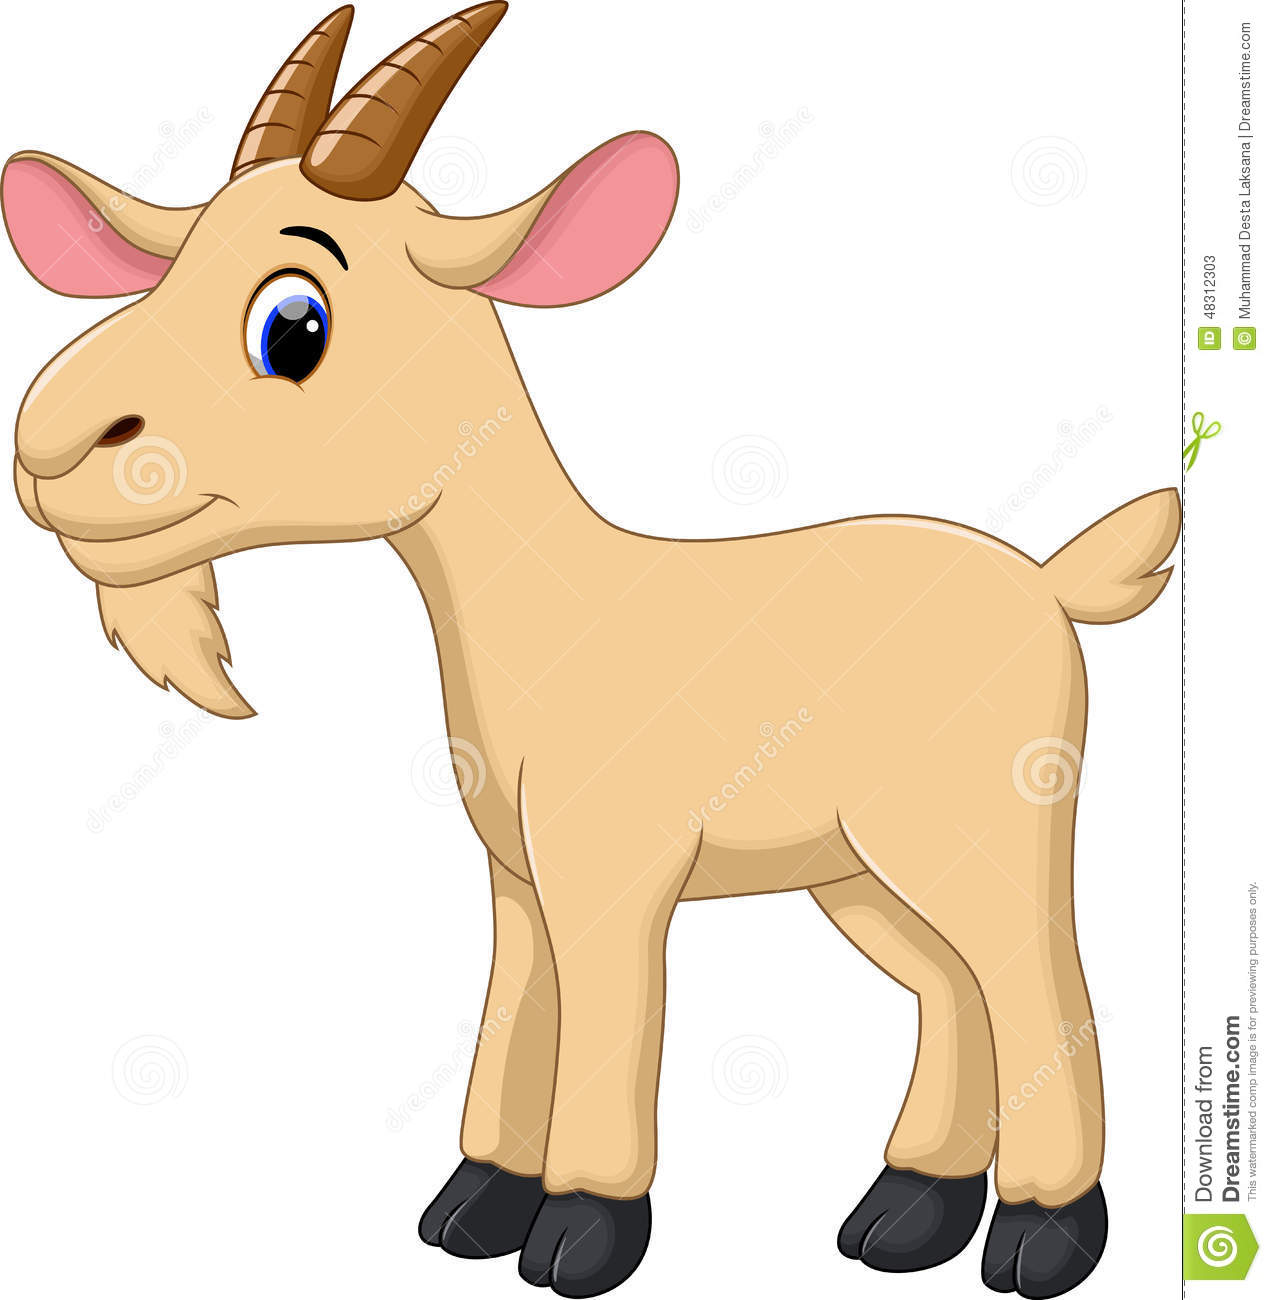 Cute Goat Cartoon Stock Illustration - Image: 48312303